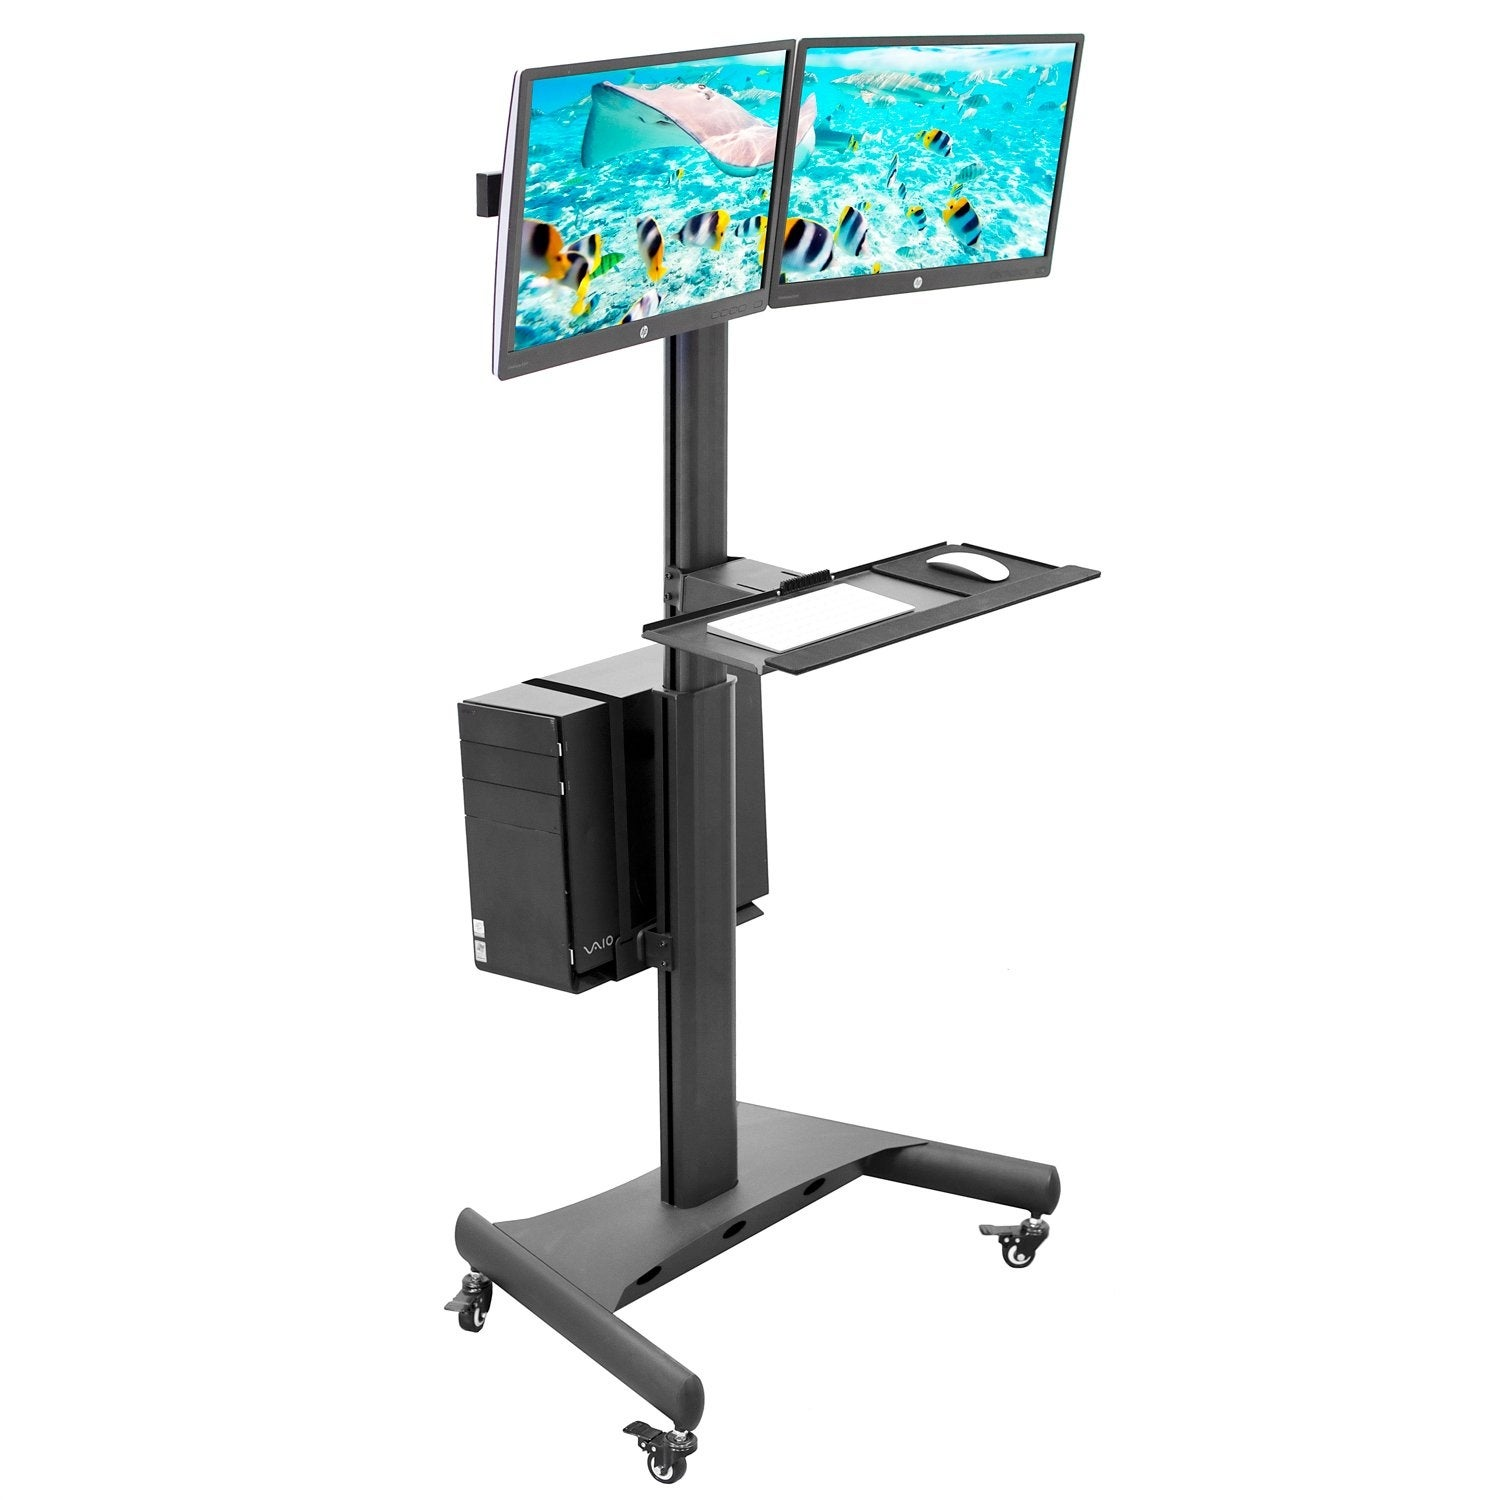 Mount It Mobile Pc Desktop Workstation For Dual Monitor Desk Mount Desk For 13 To 32 Inches Screens 17 6 Lbs Weight Capacity Overstock 29951965